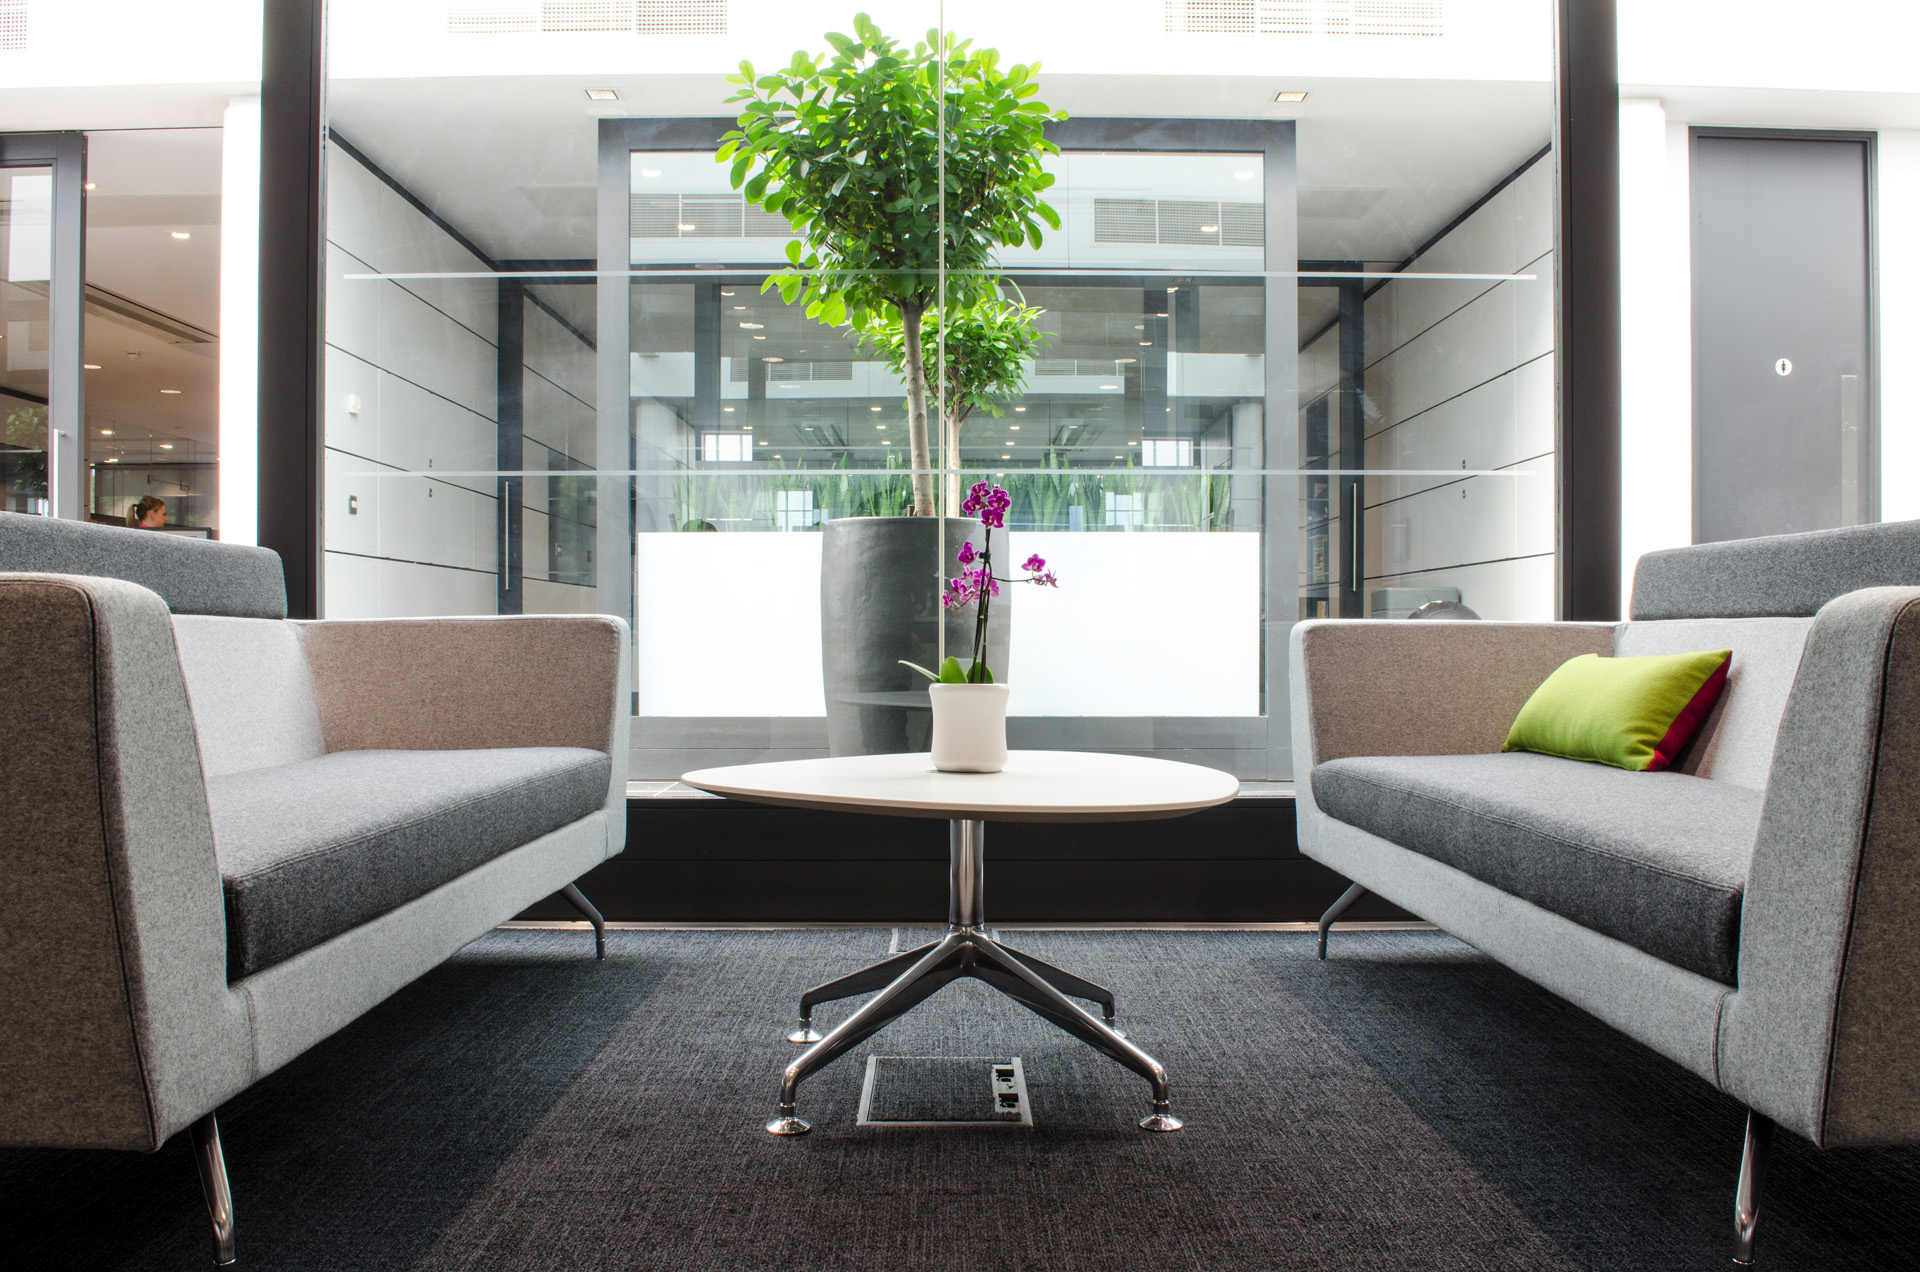 Using Interior Design to Enhance the Trust of Patients in the Healthcare Design